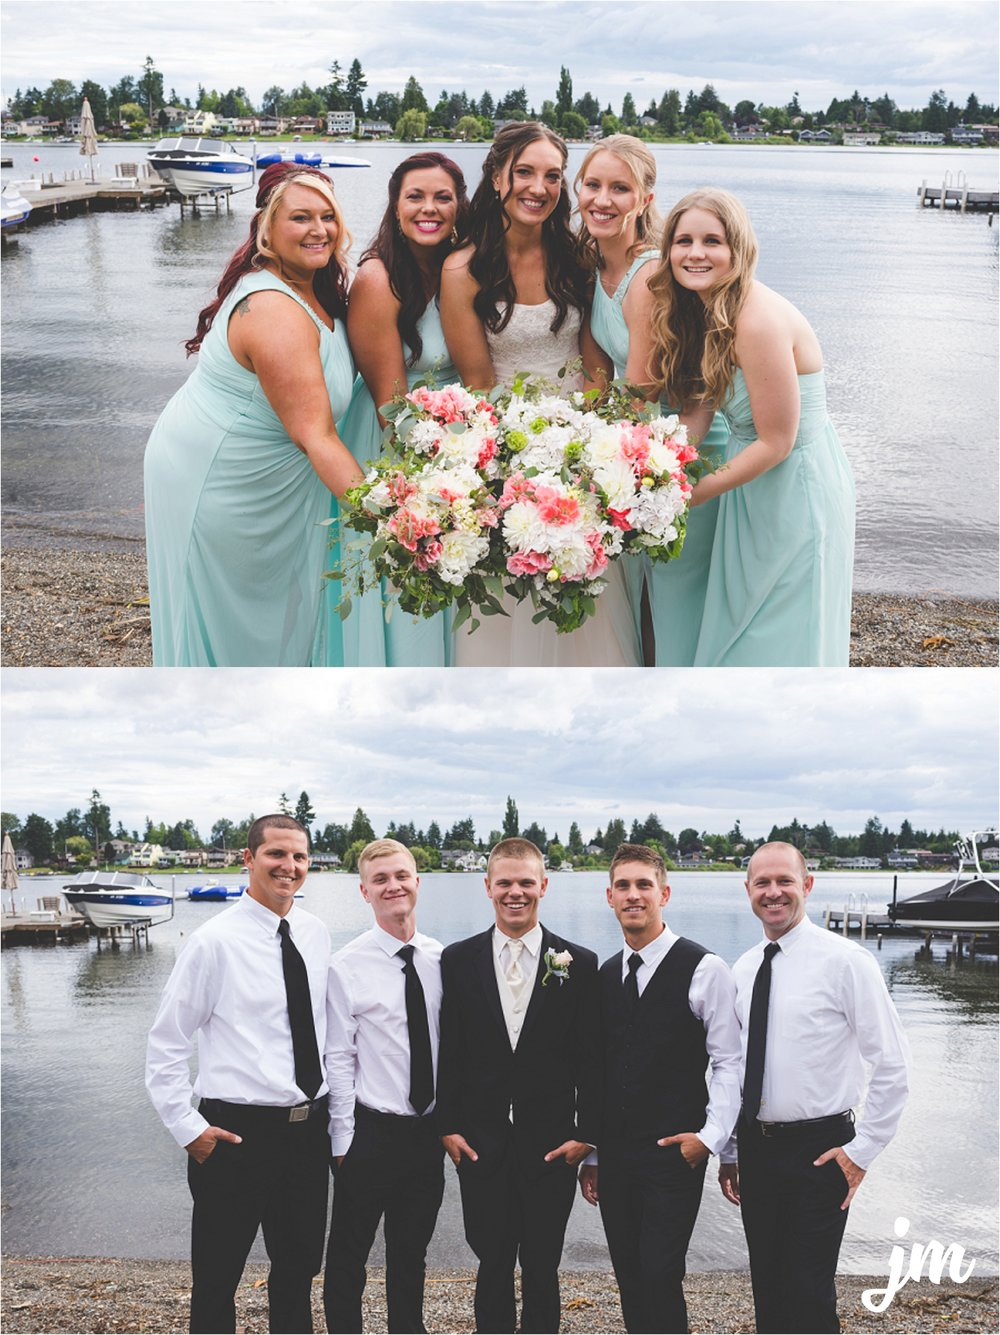 jannicka-mayte-intimate-backyard-lake-wedding-kent-wa-pacific-northwest-wedding-photographer_0030.jpg